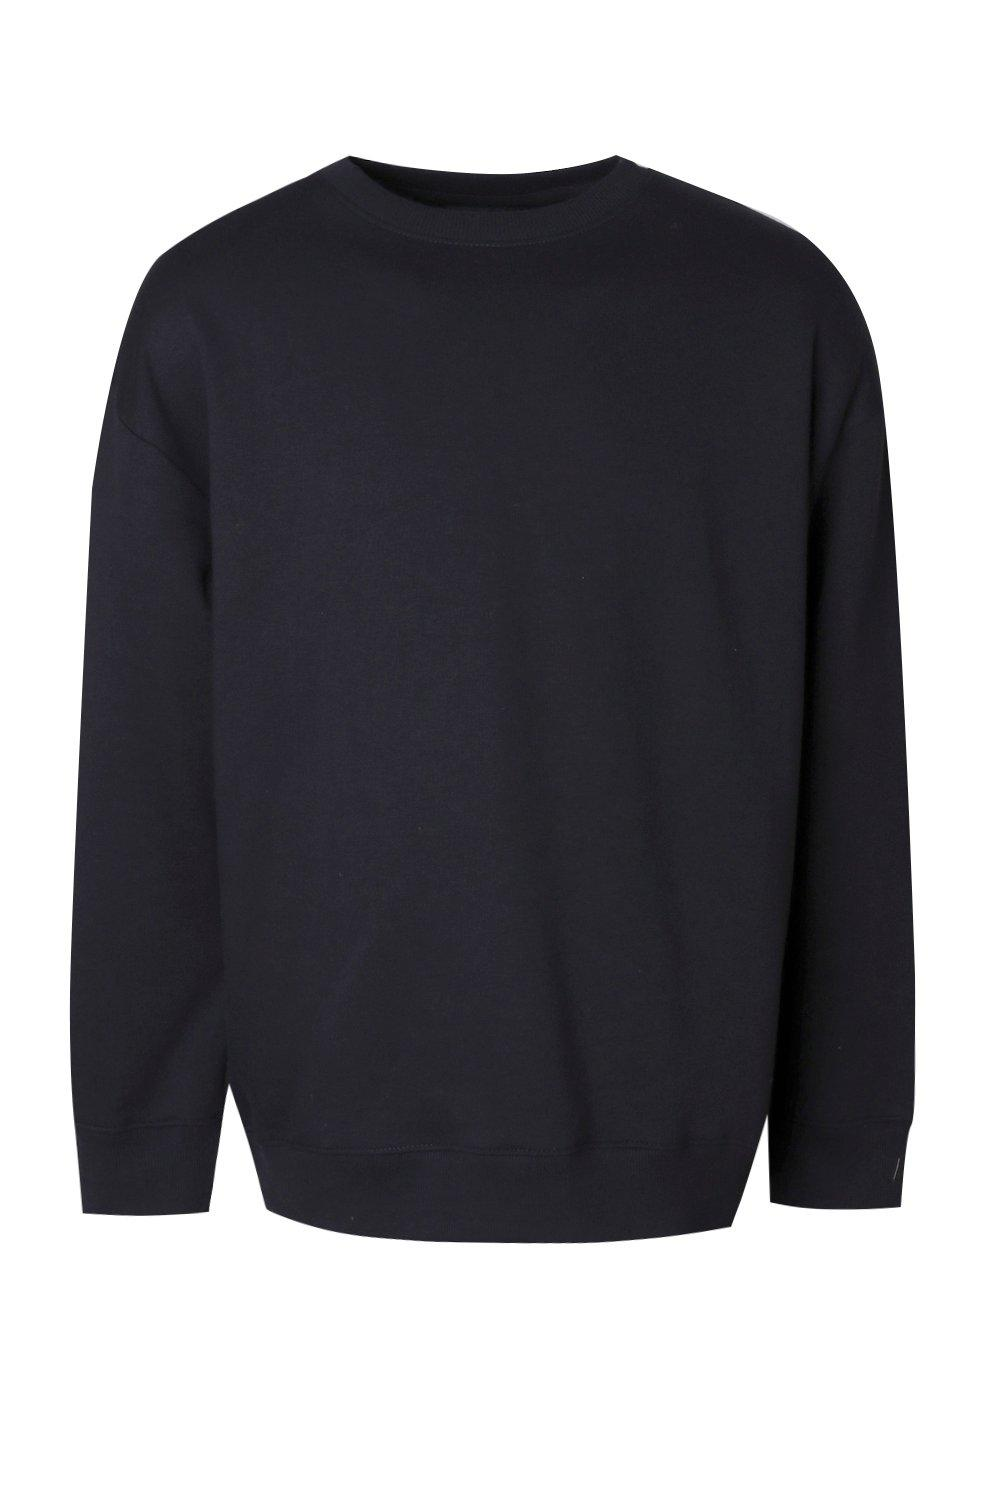 boohooMAN black Fleece Oversized Sweatshirt